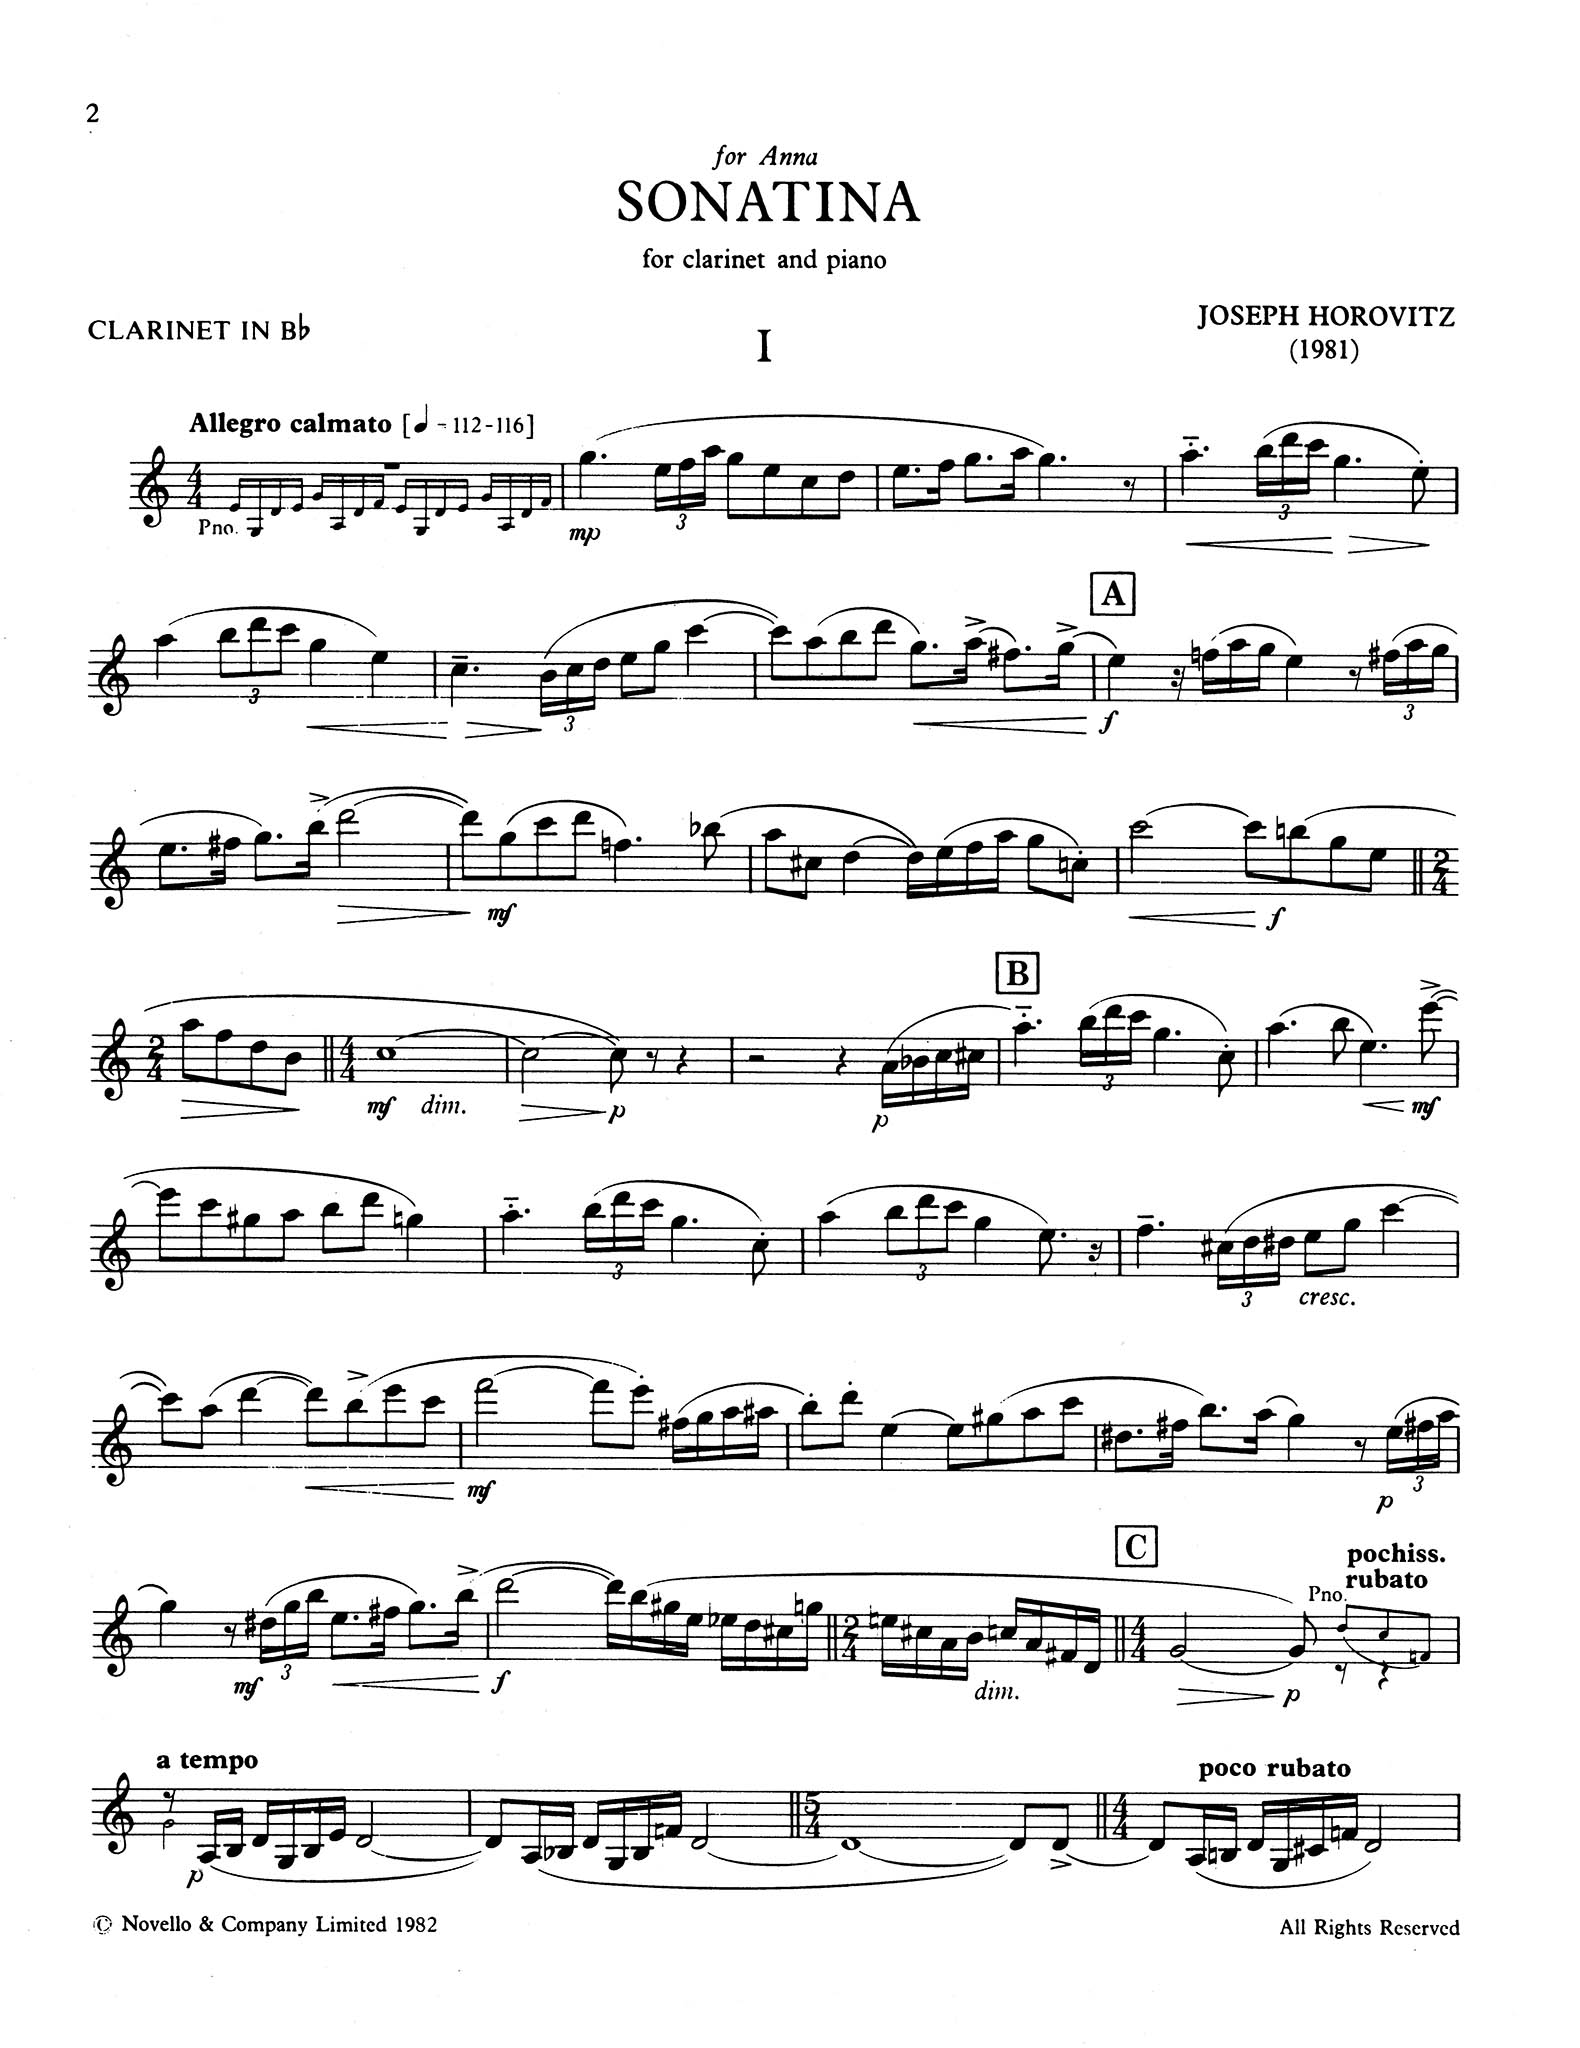 Sonatina for Clarinet & Piano Clarinet part